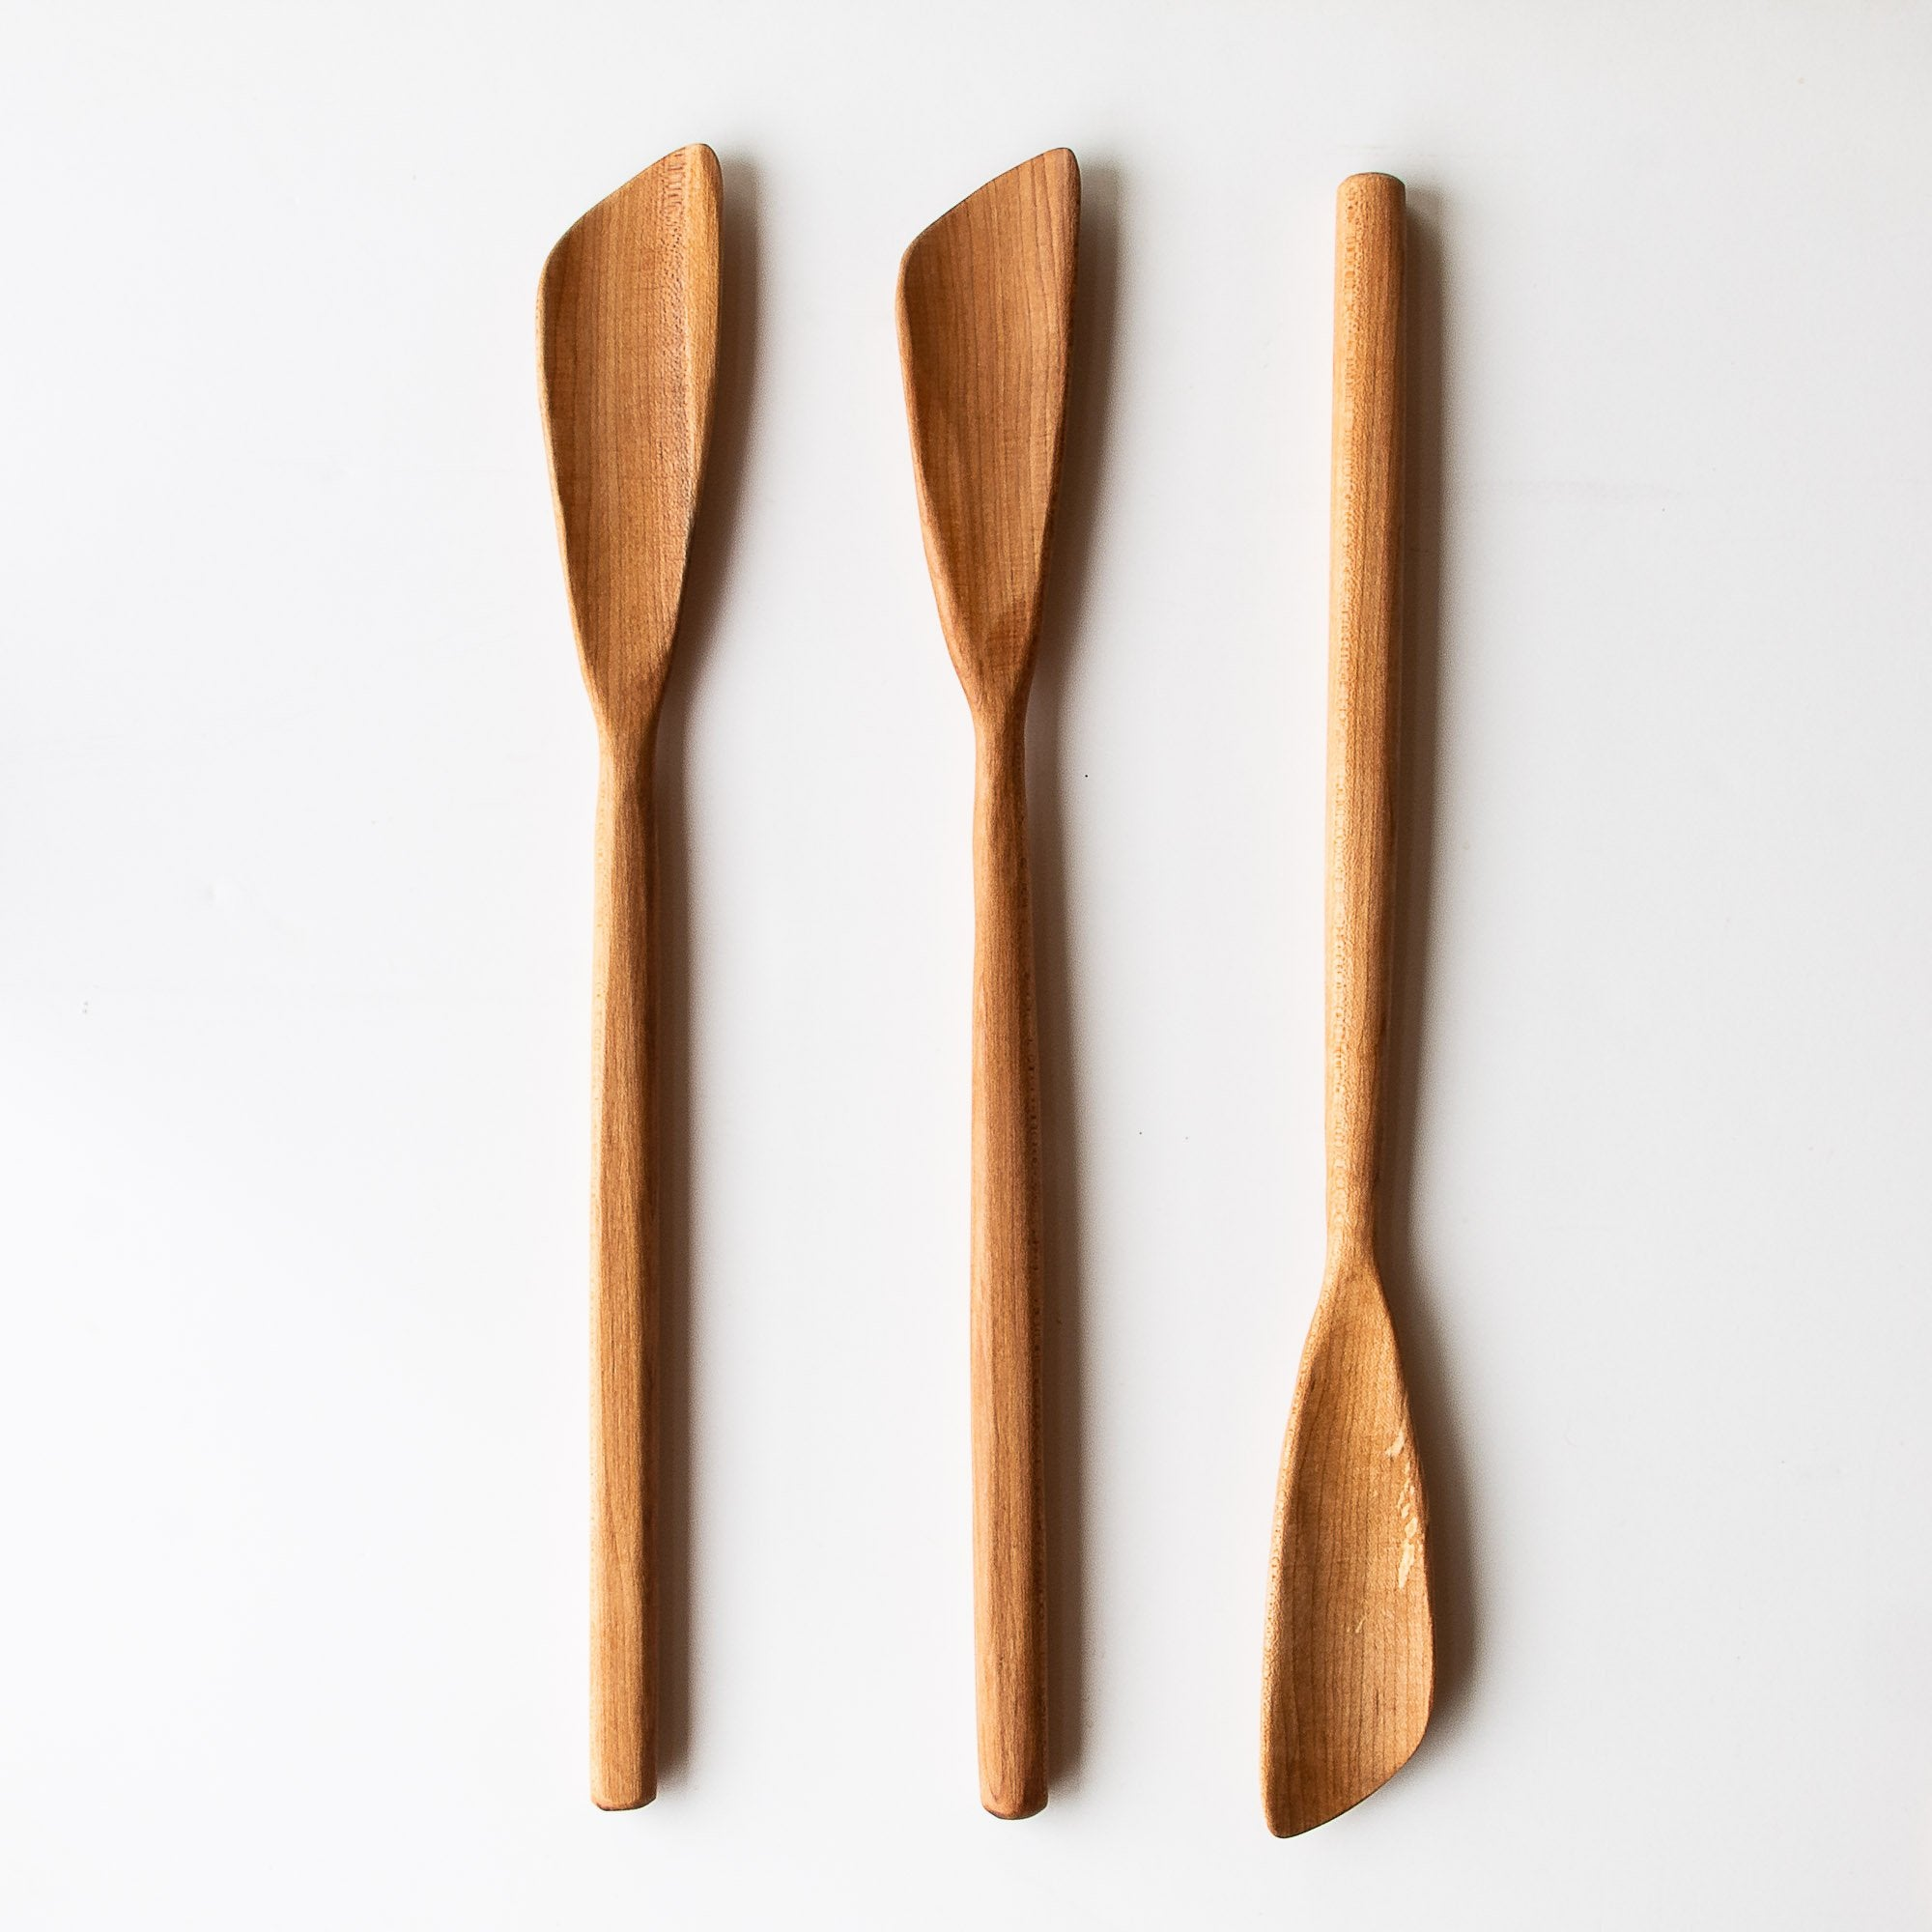 Three Handcrafted Large 16-inch Maple Wood Large Turner Spatulas - Sold by Chic & Basta